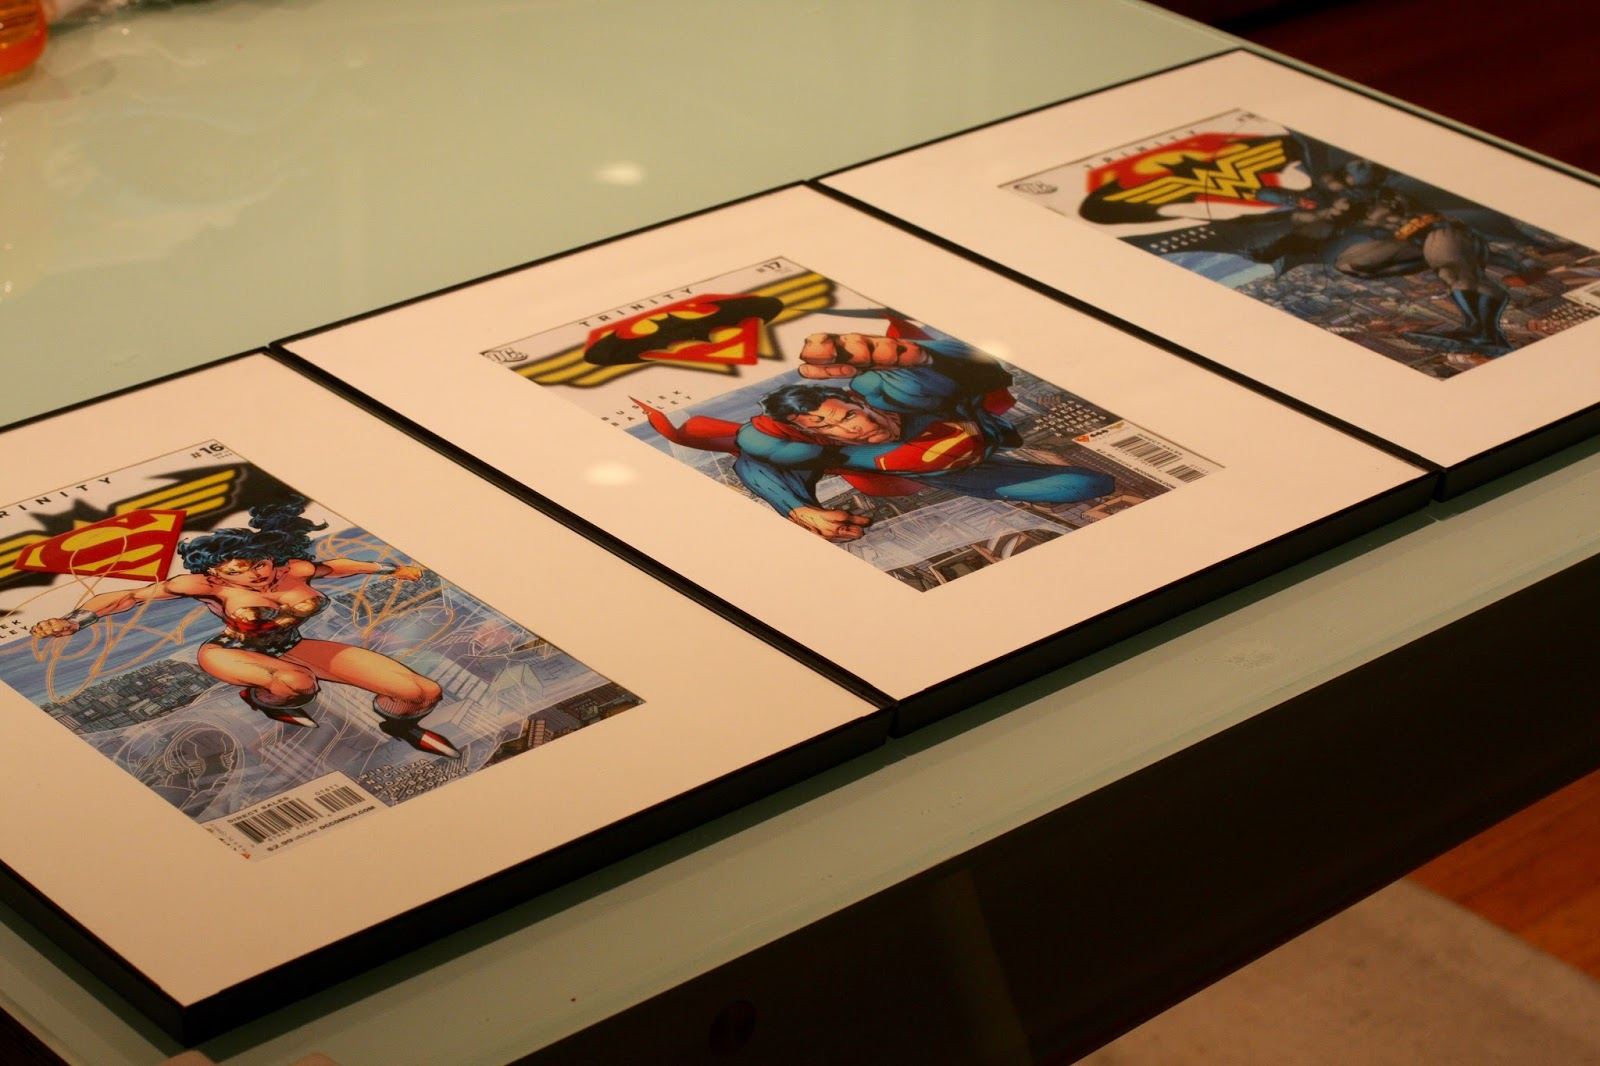 GEEK DIY BAM!: COMIC BOOK PHOTO FRAME DISPLAY WALL ART DIY